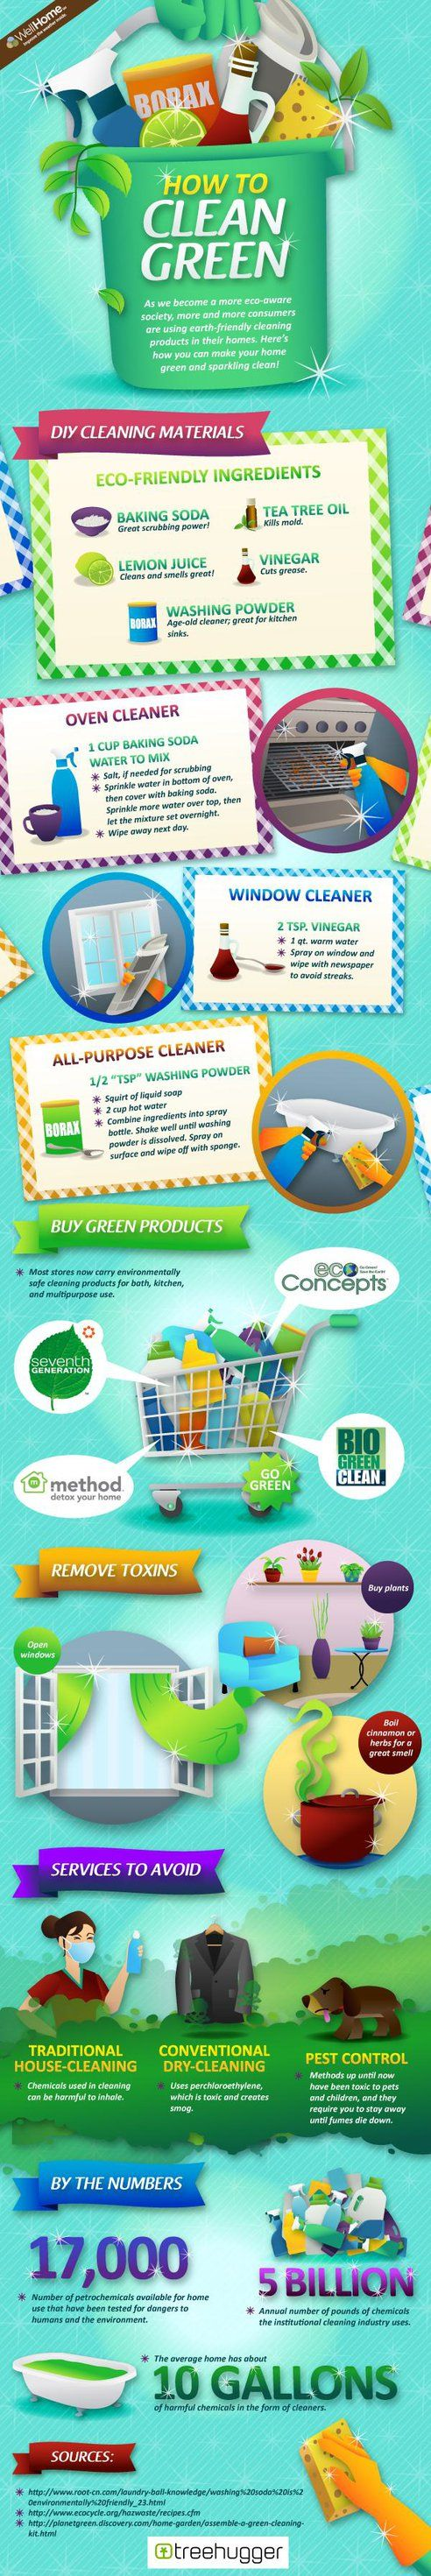 best ideas about Go green on Pinterest Sustainability Green